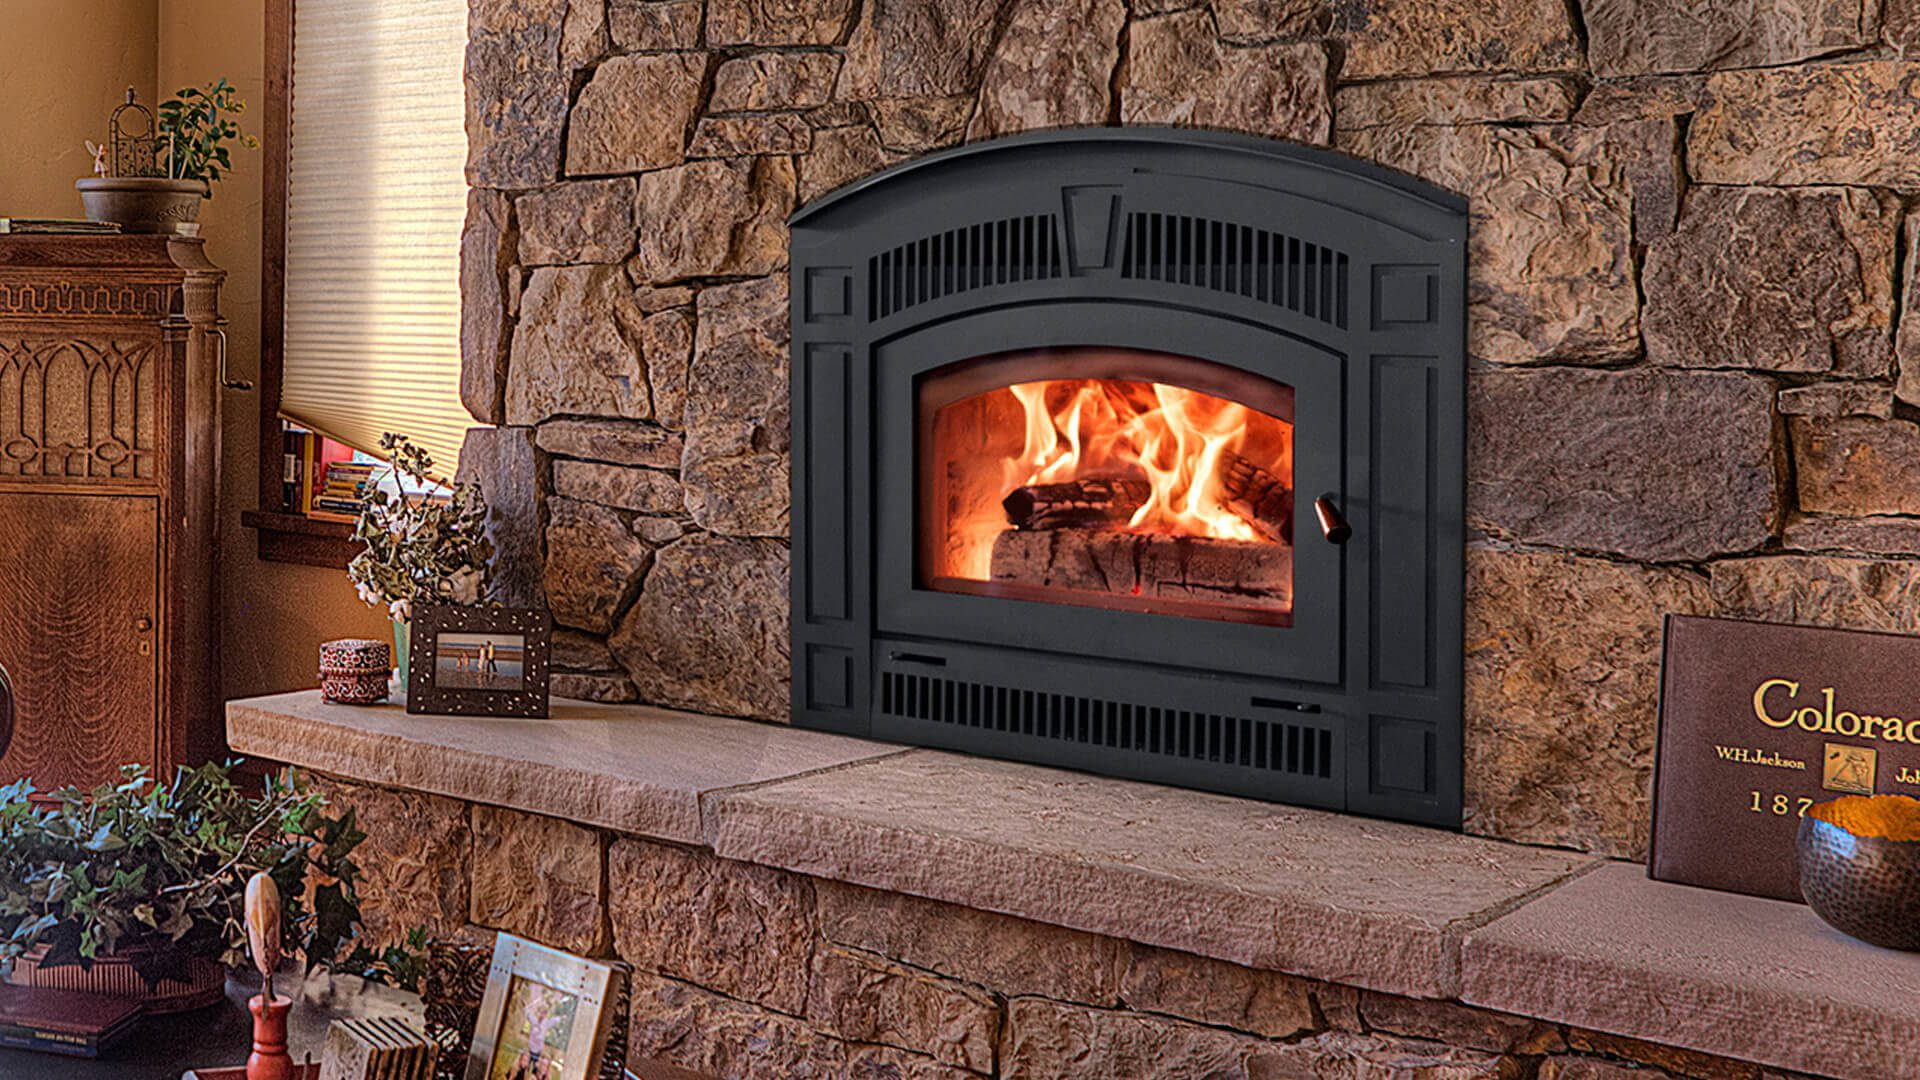 Peachy Wood Fireplaces Archives Cedar Hearth Mick Gage Plumbing Home Interior And Landscaping Ologienasavecom